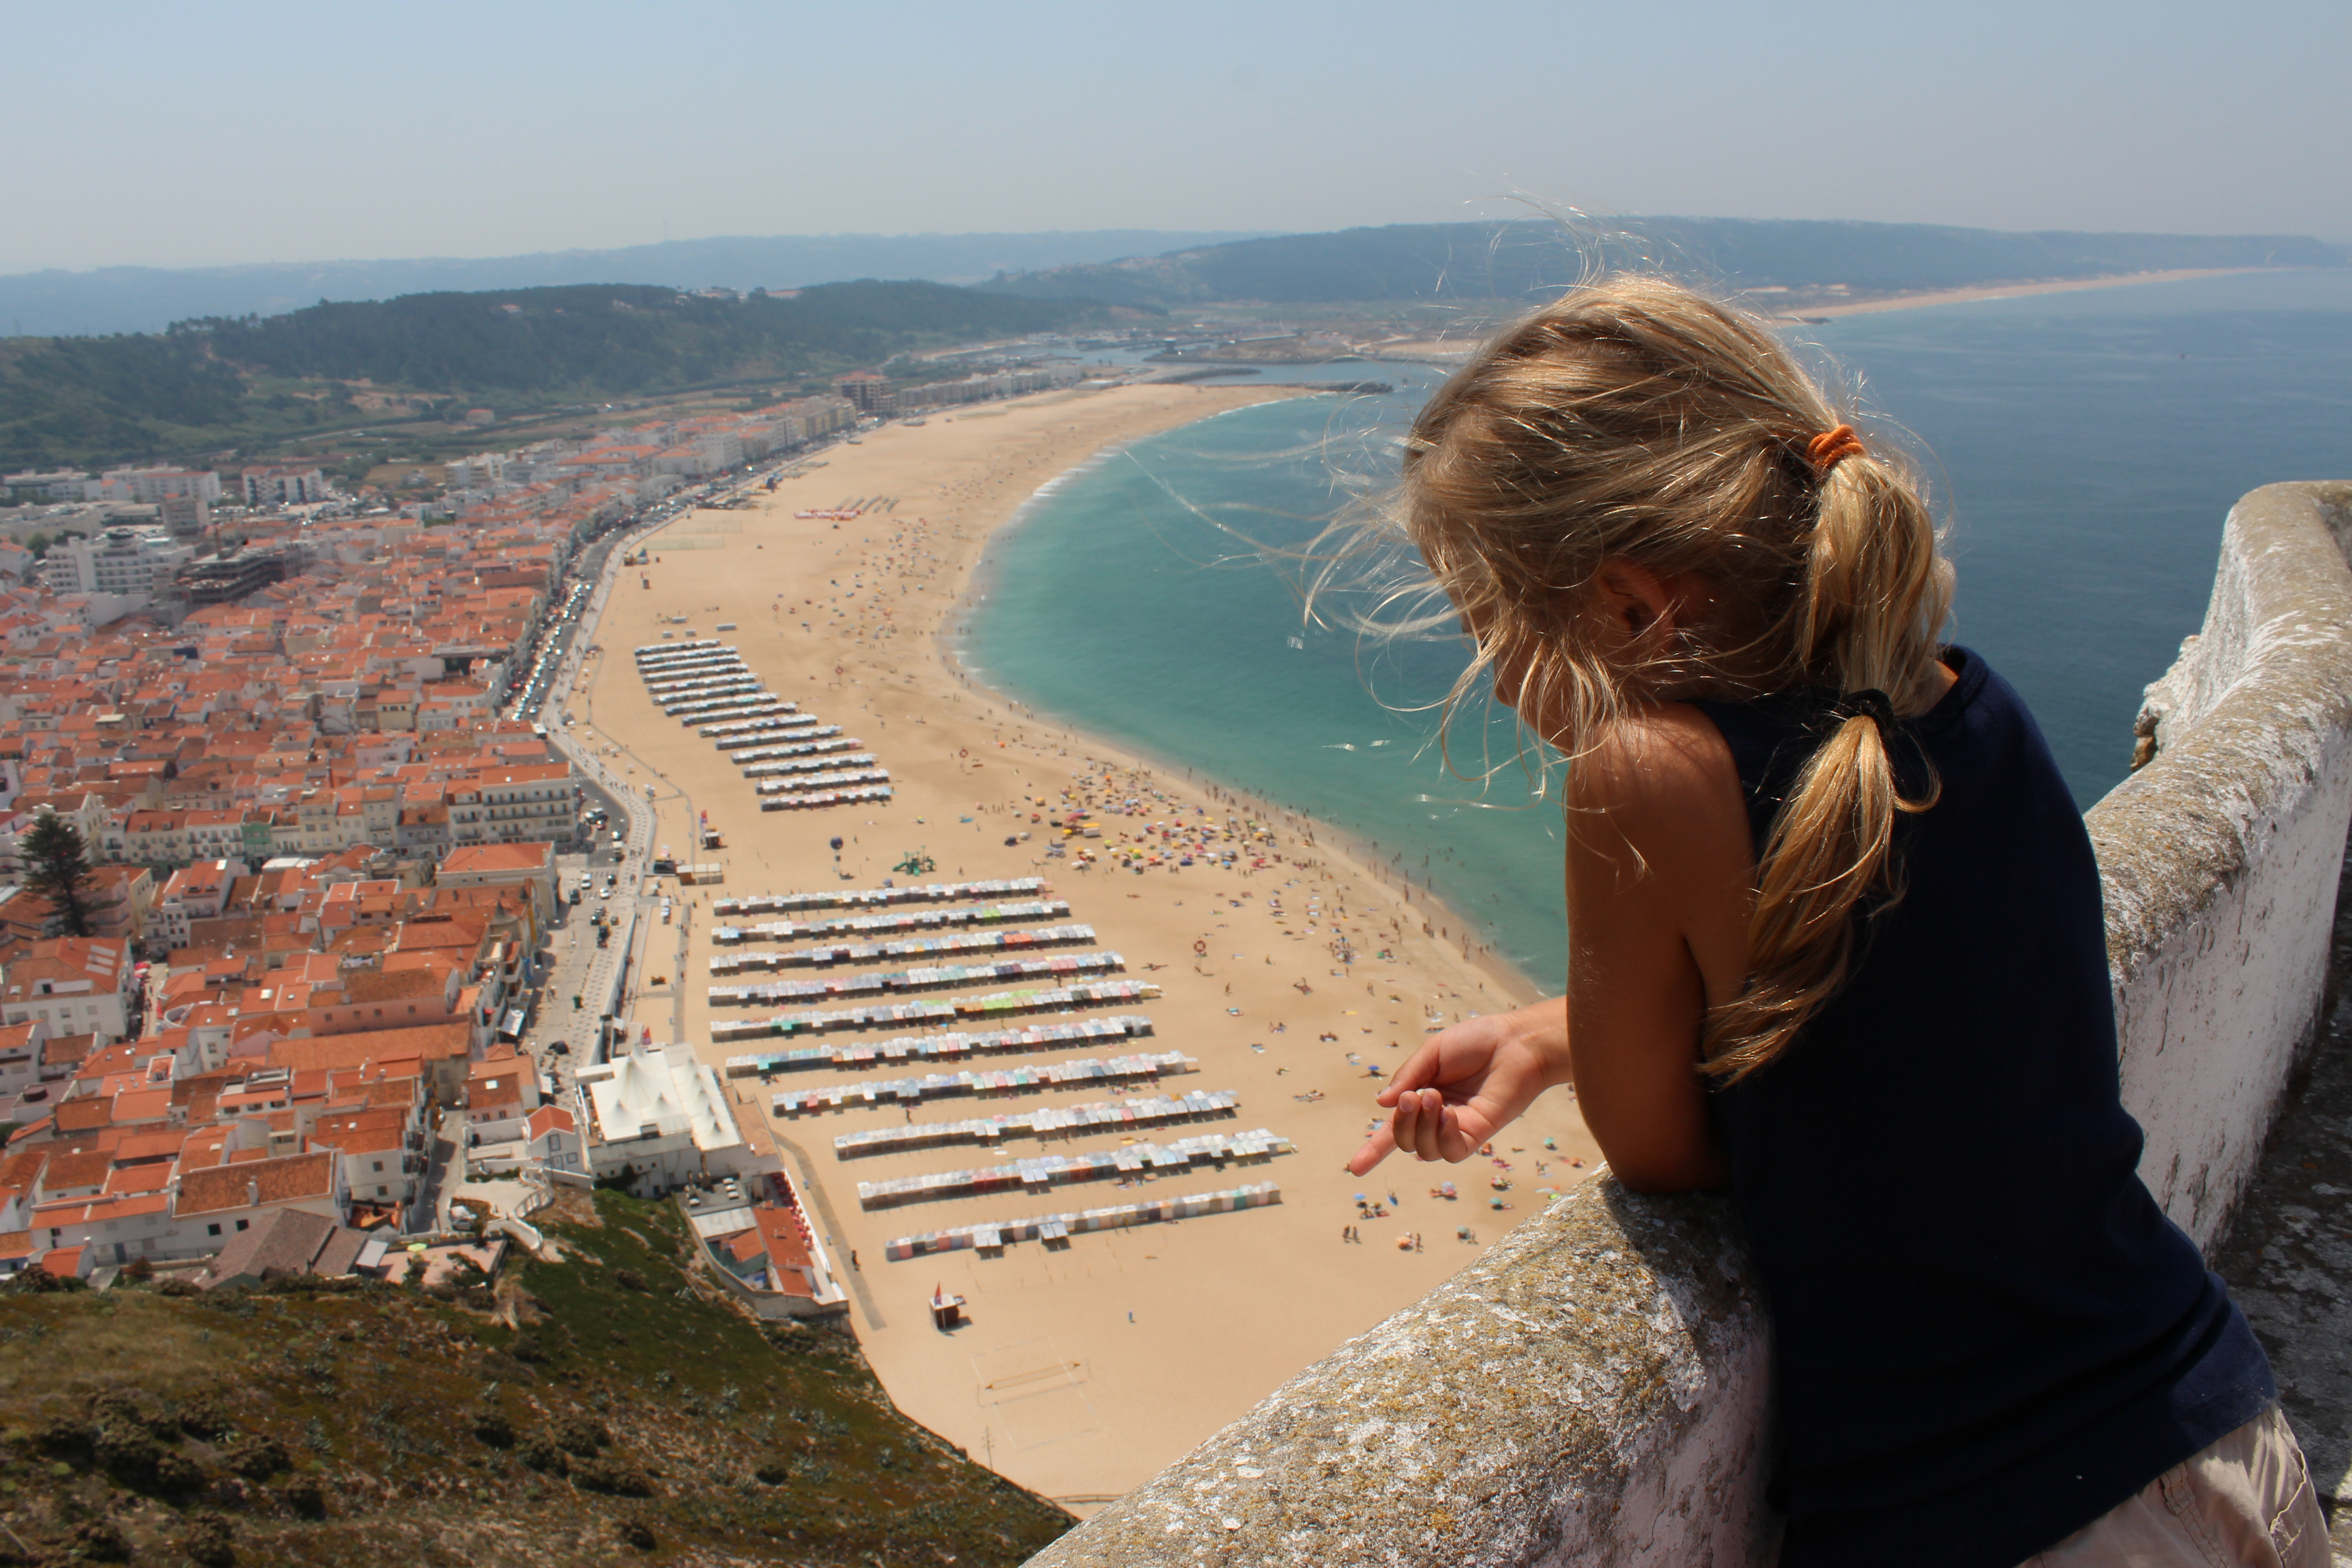 Planning an amazing day trip to Nazare, Portugal.